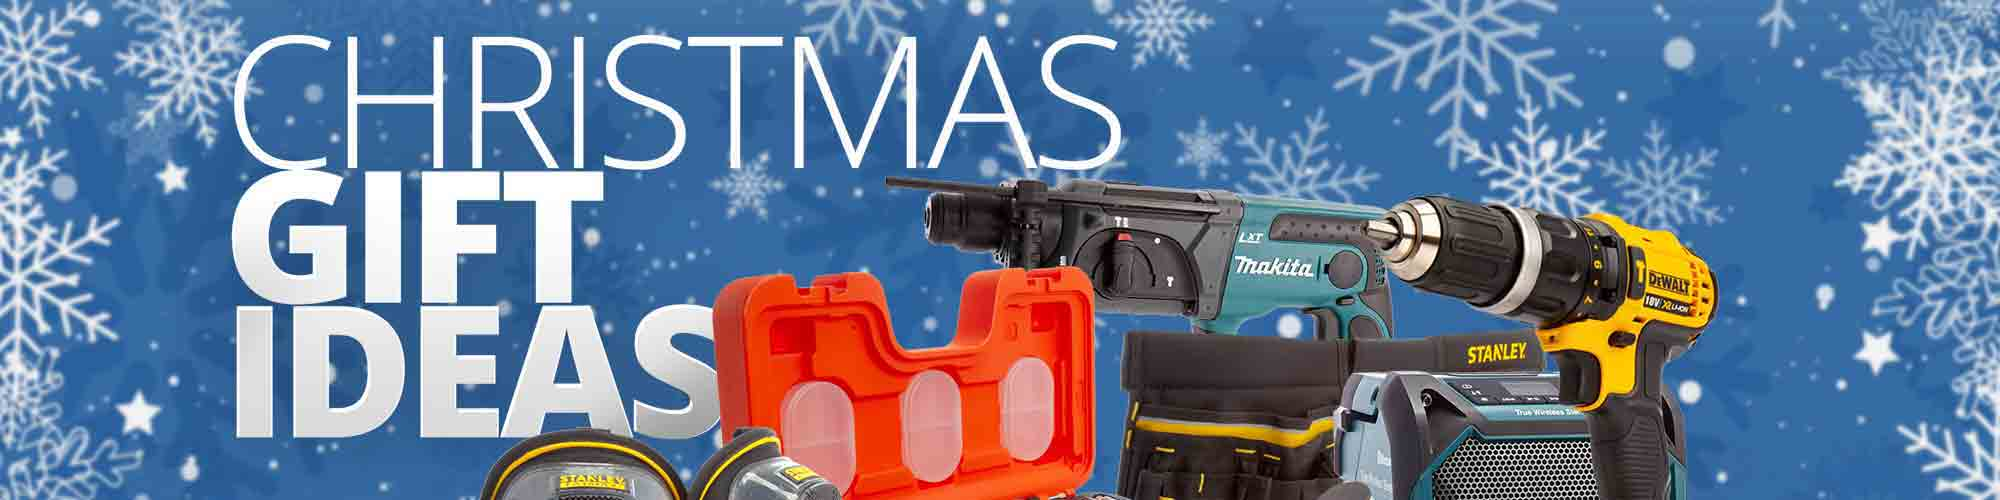 Christmas Gift Ideas for Tool Lovers